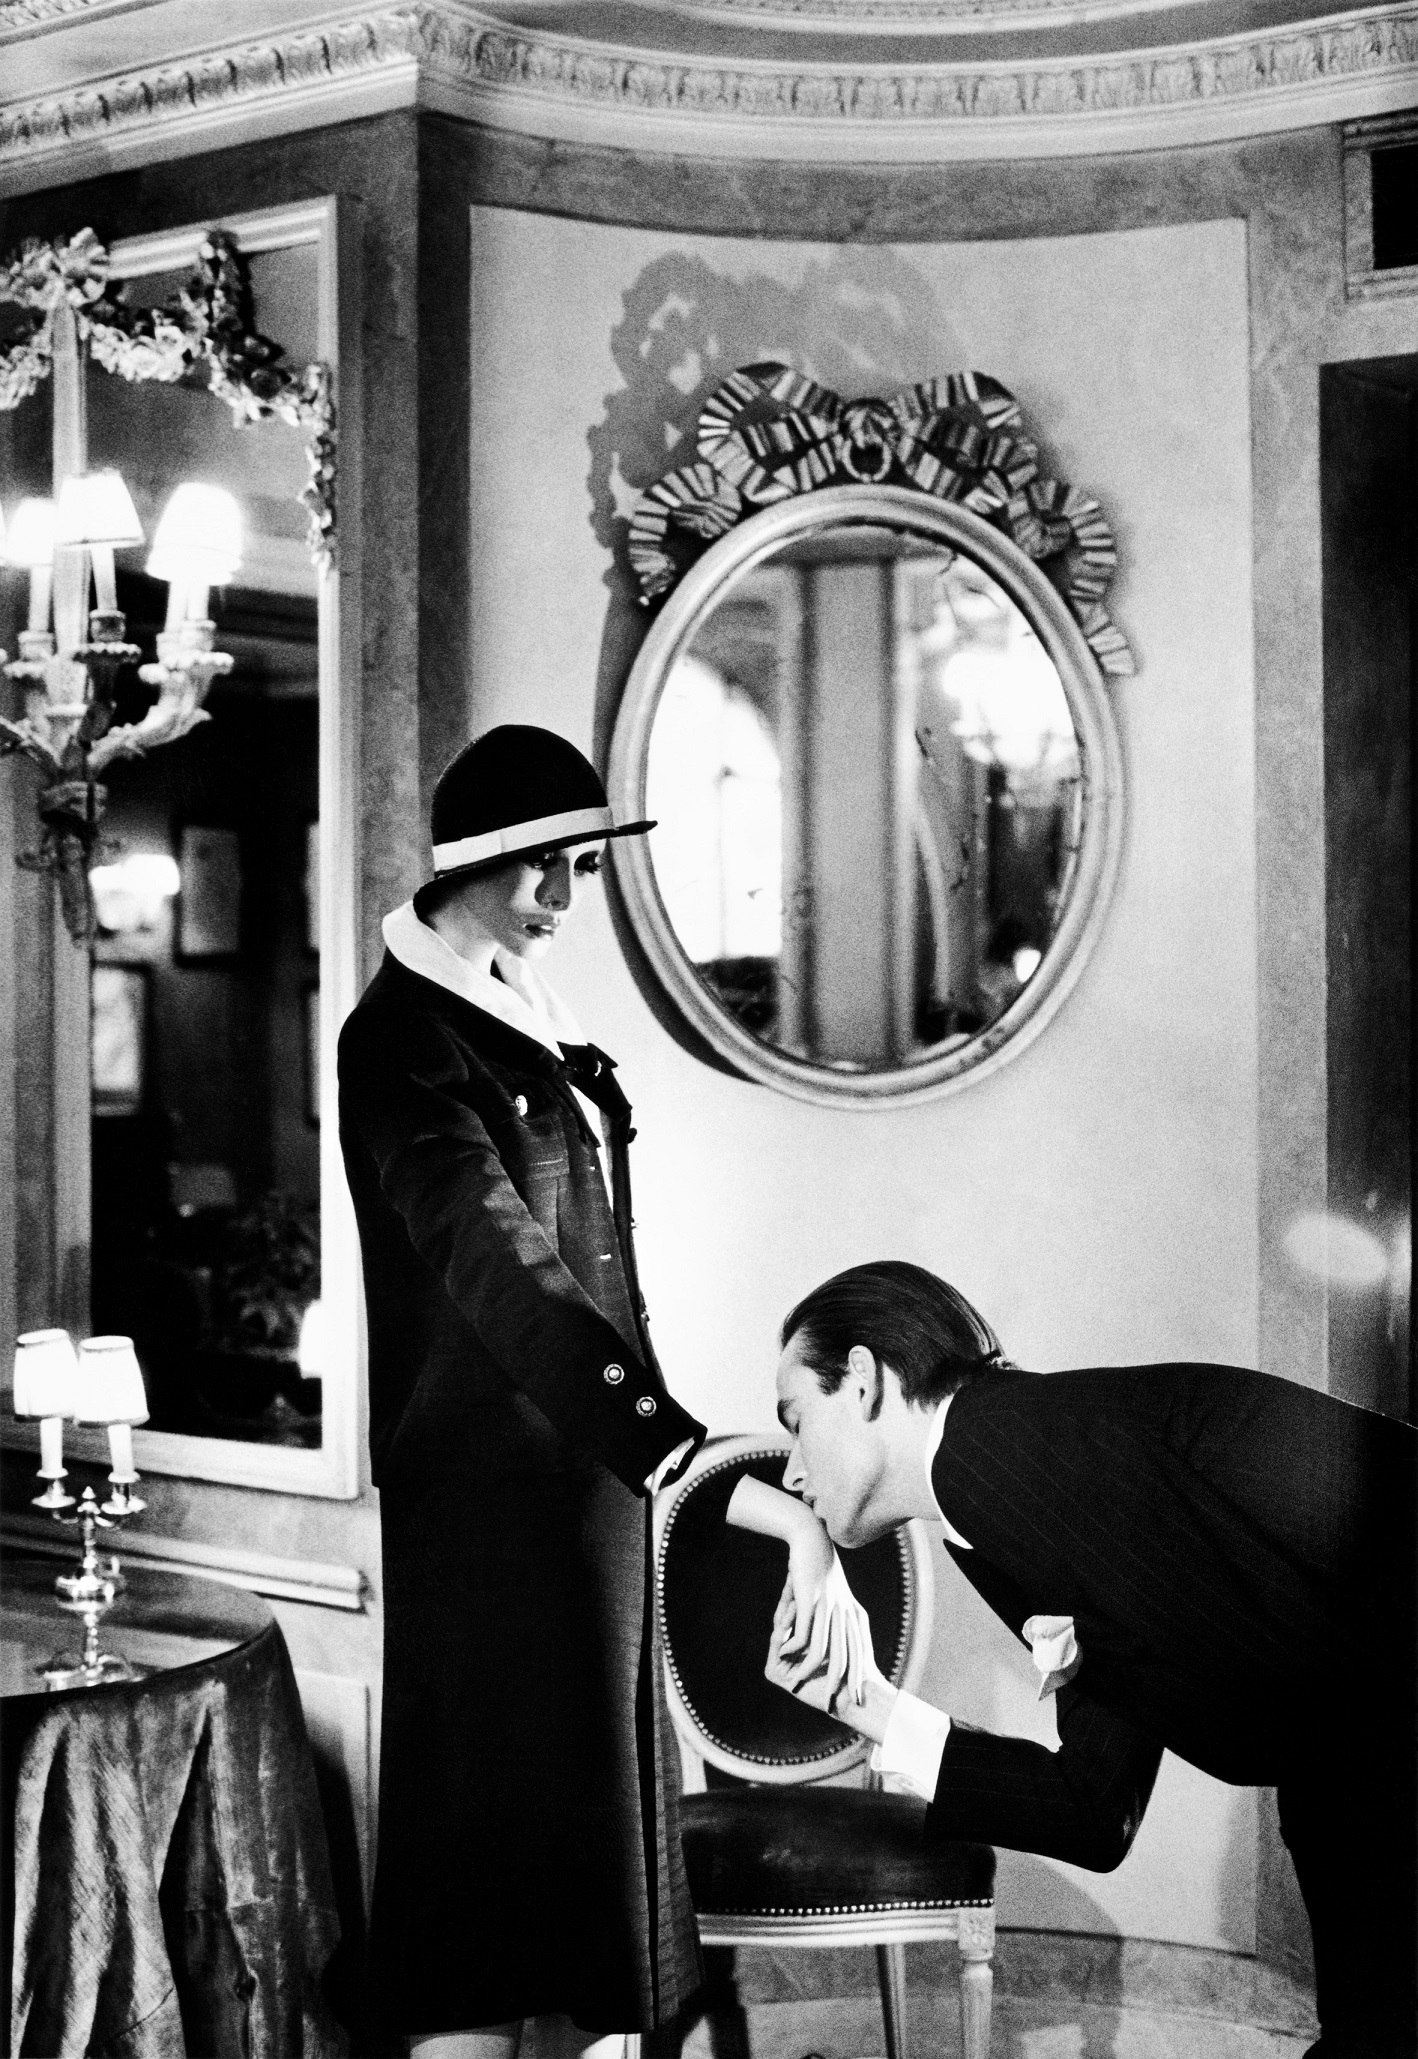 At Maxim´s, from the series Sleepless Nights, Paris 1978, © Helmut Newton Estate